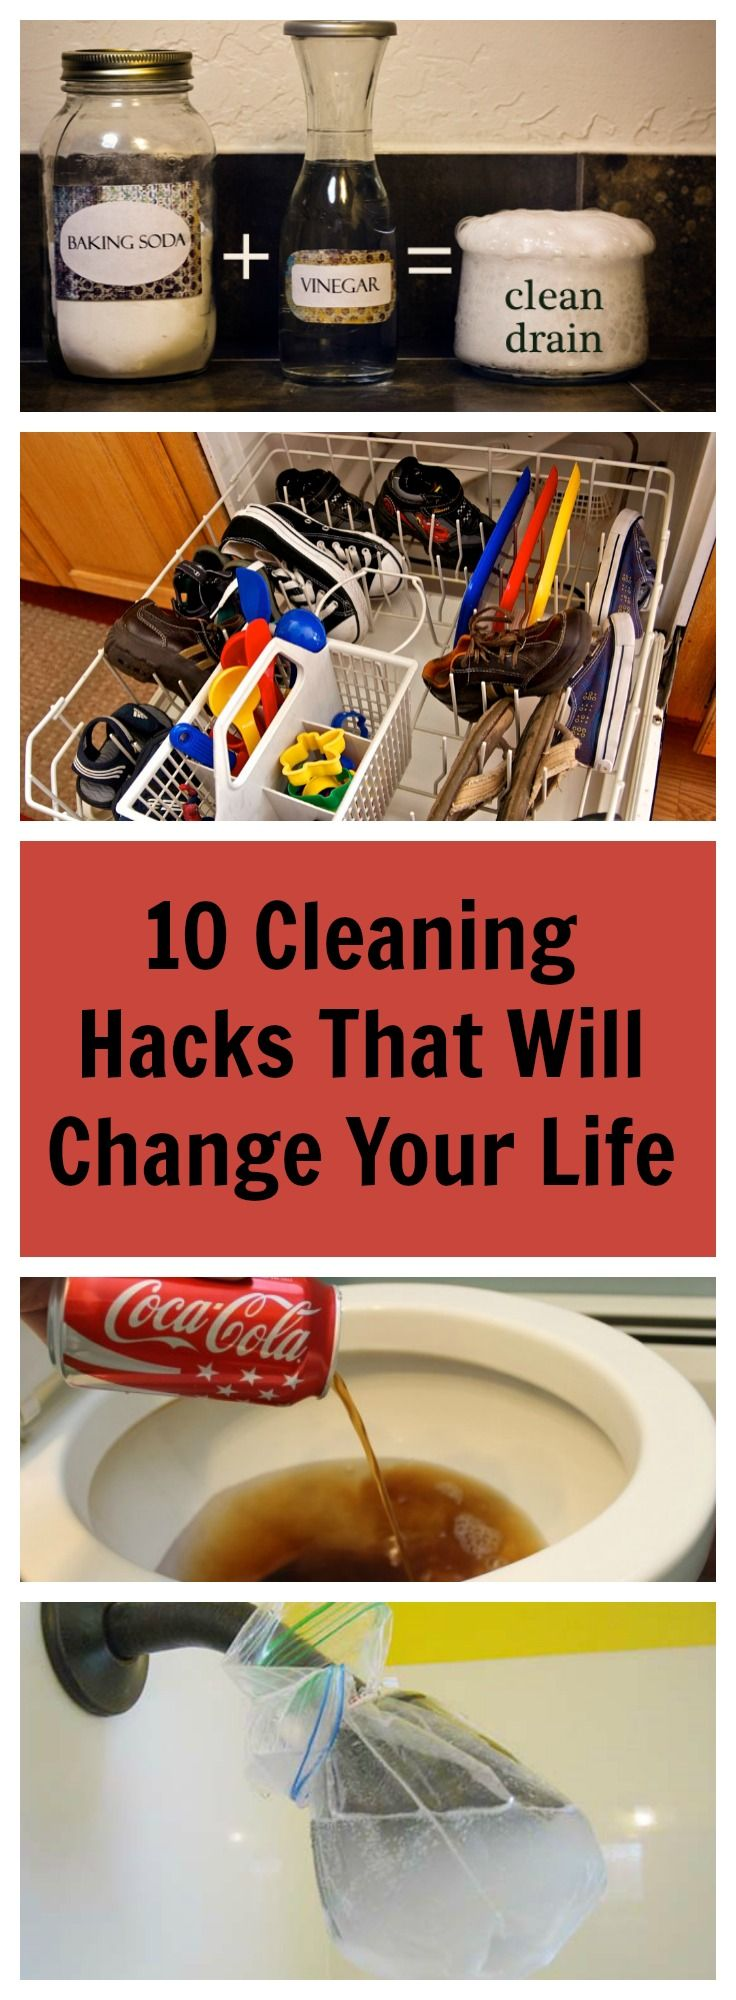 We dream of having a clean house but who dreams of actually doing the cleaning? Try out these 10 house cleaning tricks and make your sparkle in no time!